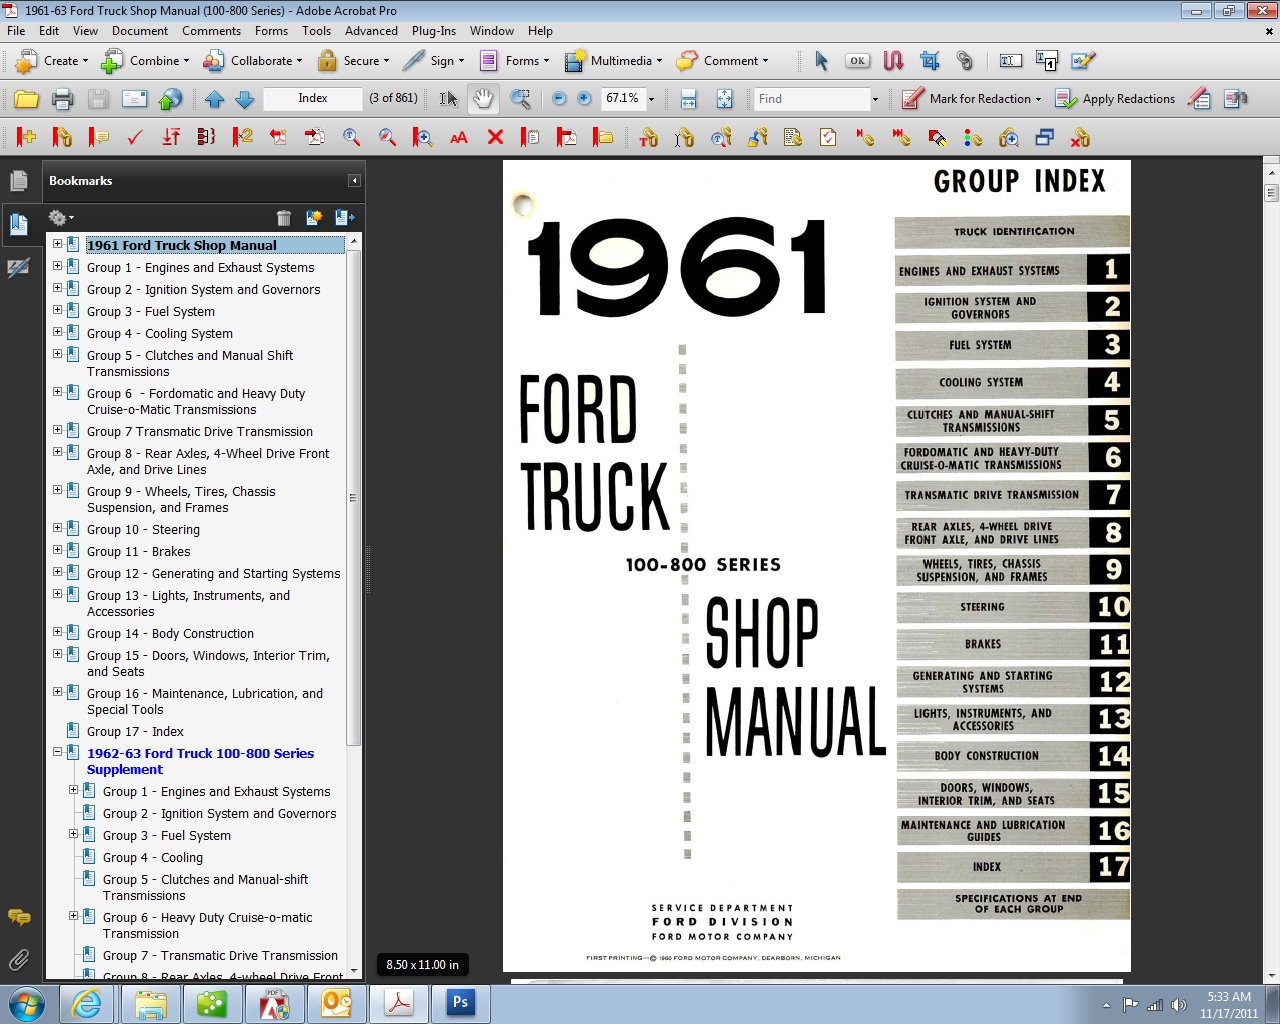 1962 Ford F100 Wiring Diagram Trusted 1968 F250 1961 63 Truck Shop Manual Motor Company David E Leblanc Pickup Electrical Schematic